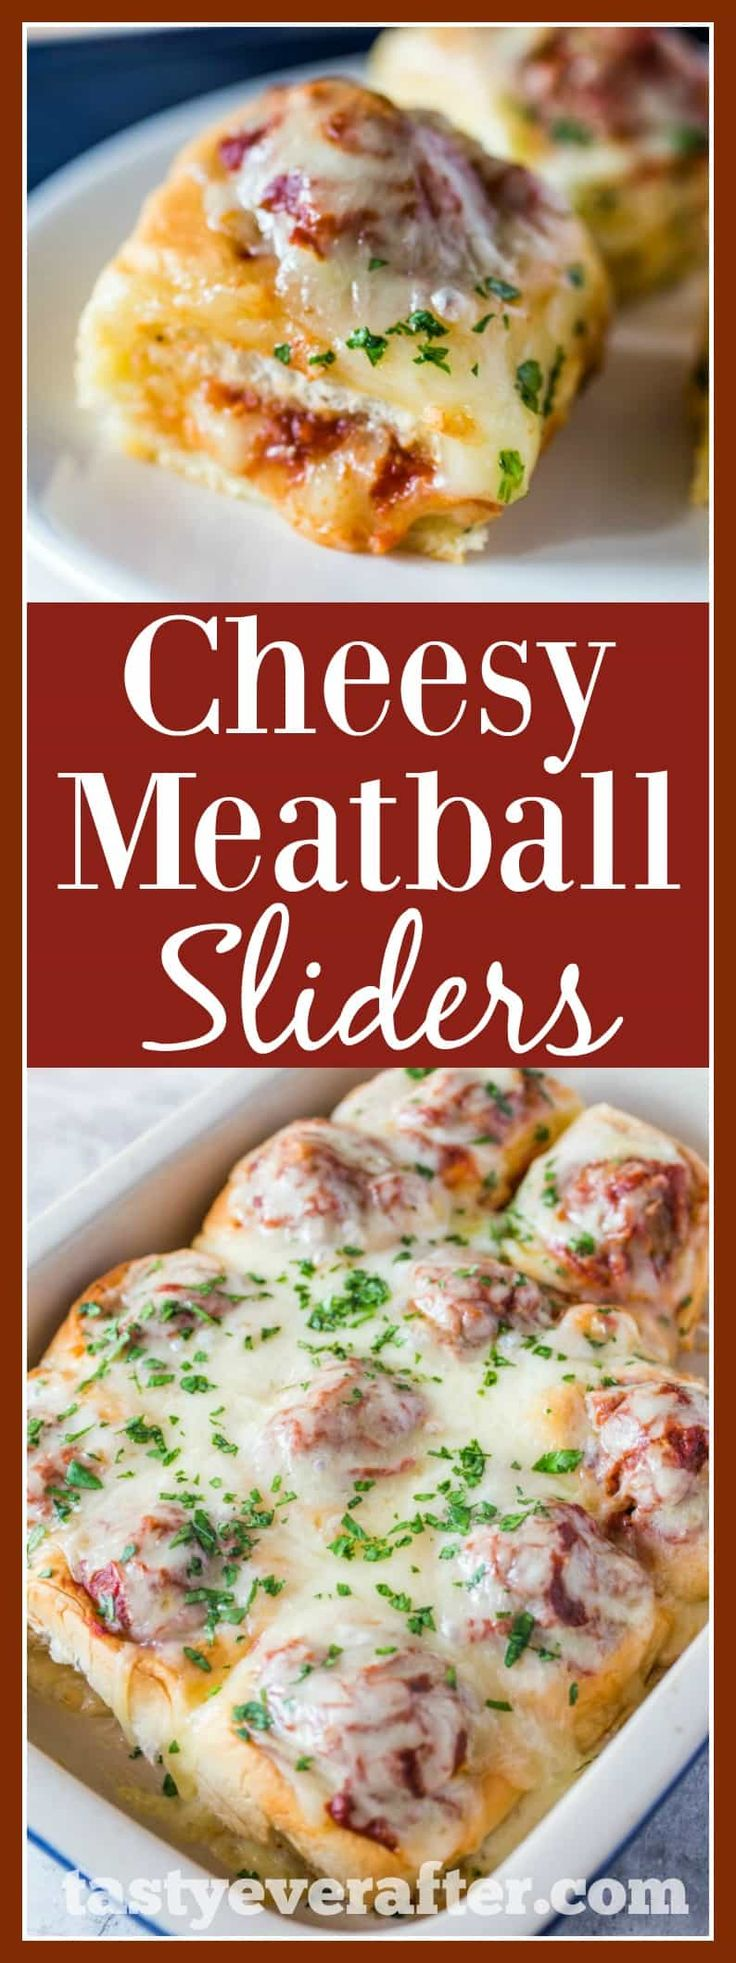 Cheesy Meatball Sliders #Recipe are made with homemade meatballs and marinara sauce nestled in Hawaiian sweet rolls and topped with 2 different kinds of Italian cheese. #AD